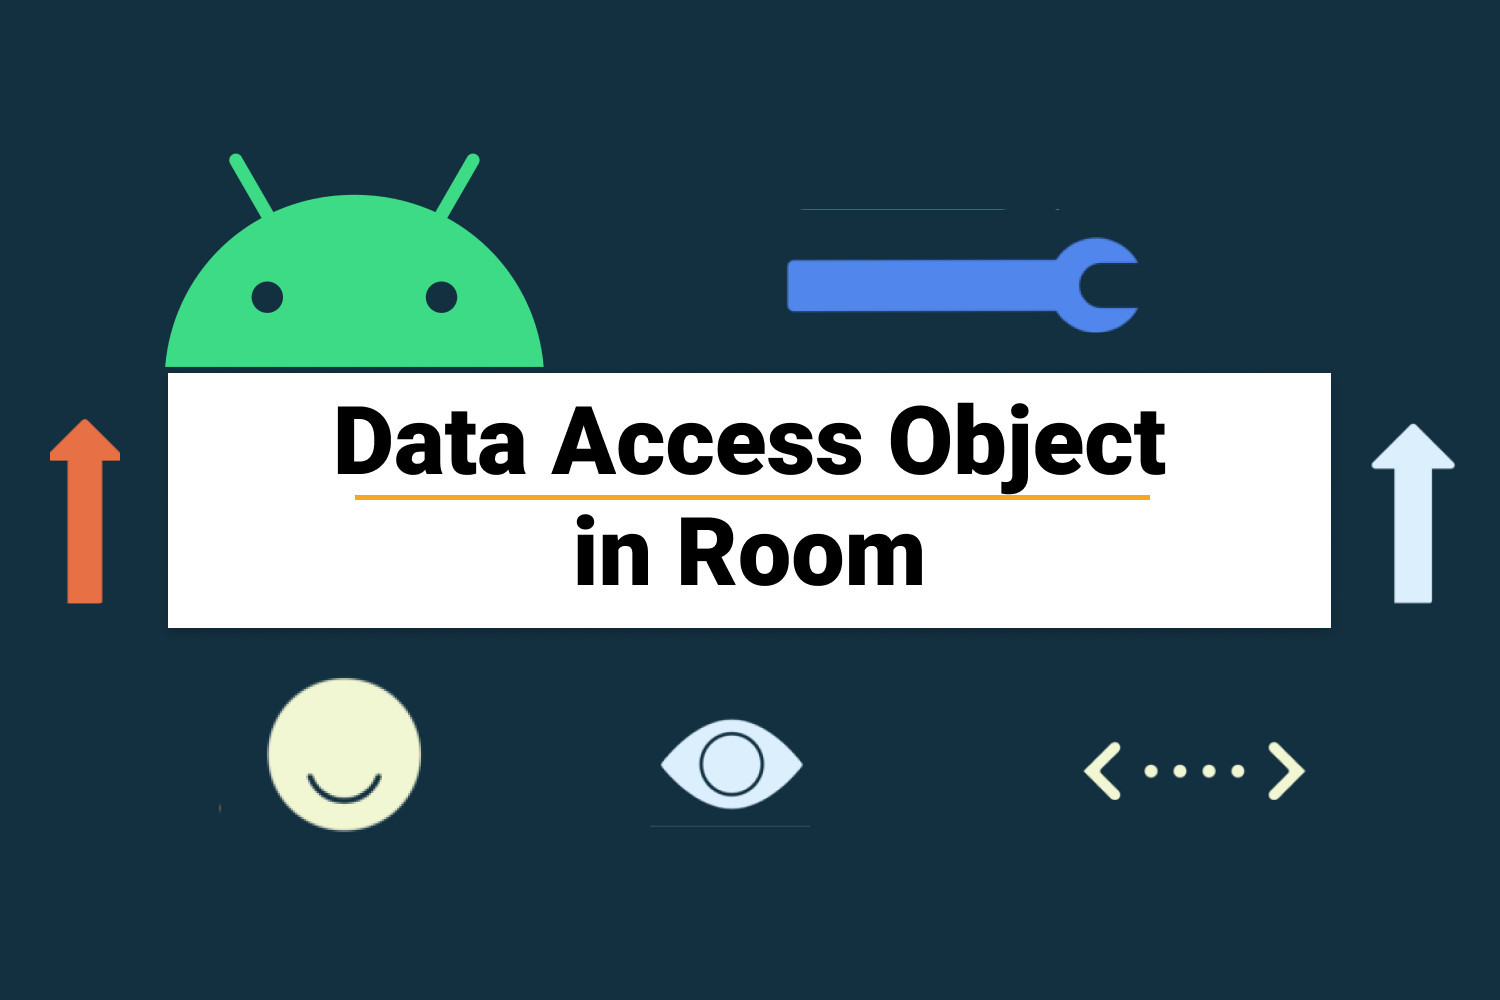 Data Access Objects - DAO in Room